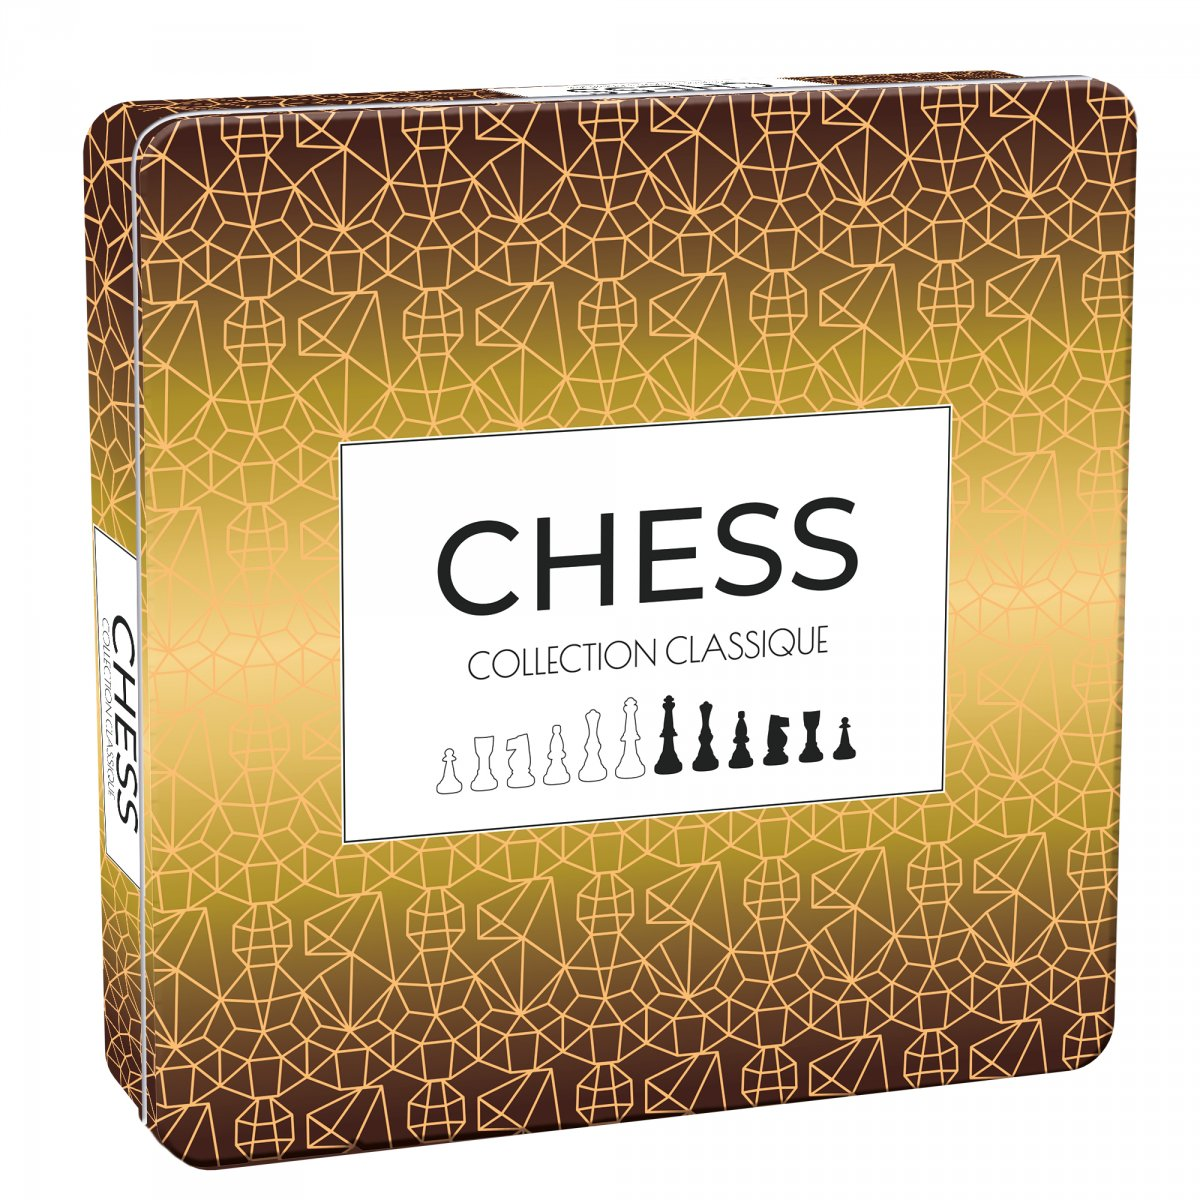 Collection Classique Chess